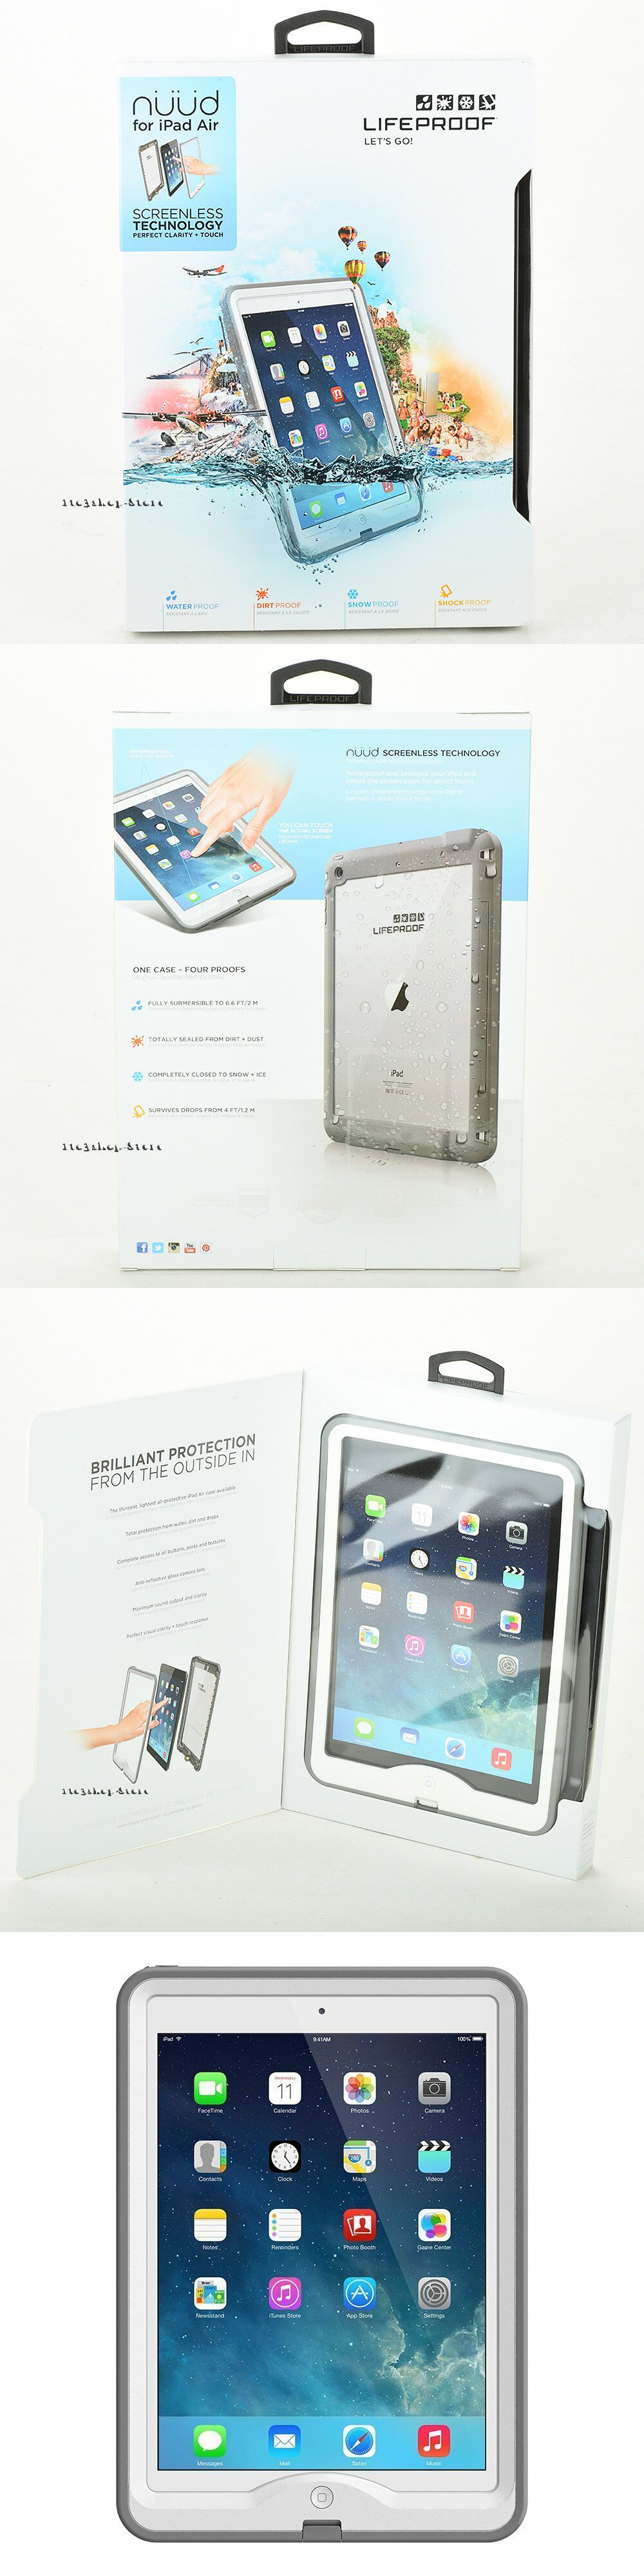 classic fit 9a258 11180 Cases Covers Keyboard Folios 176973: Lifeproof Nuud Waterproof Hard ...